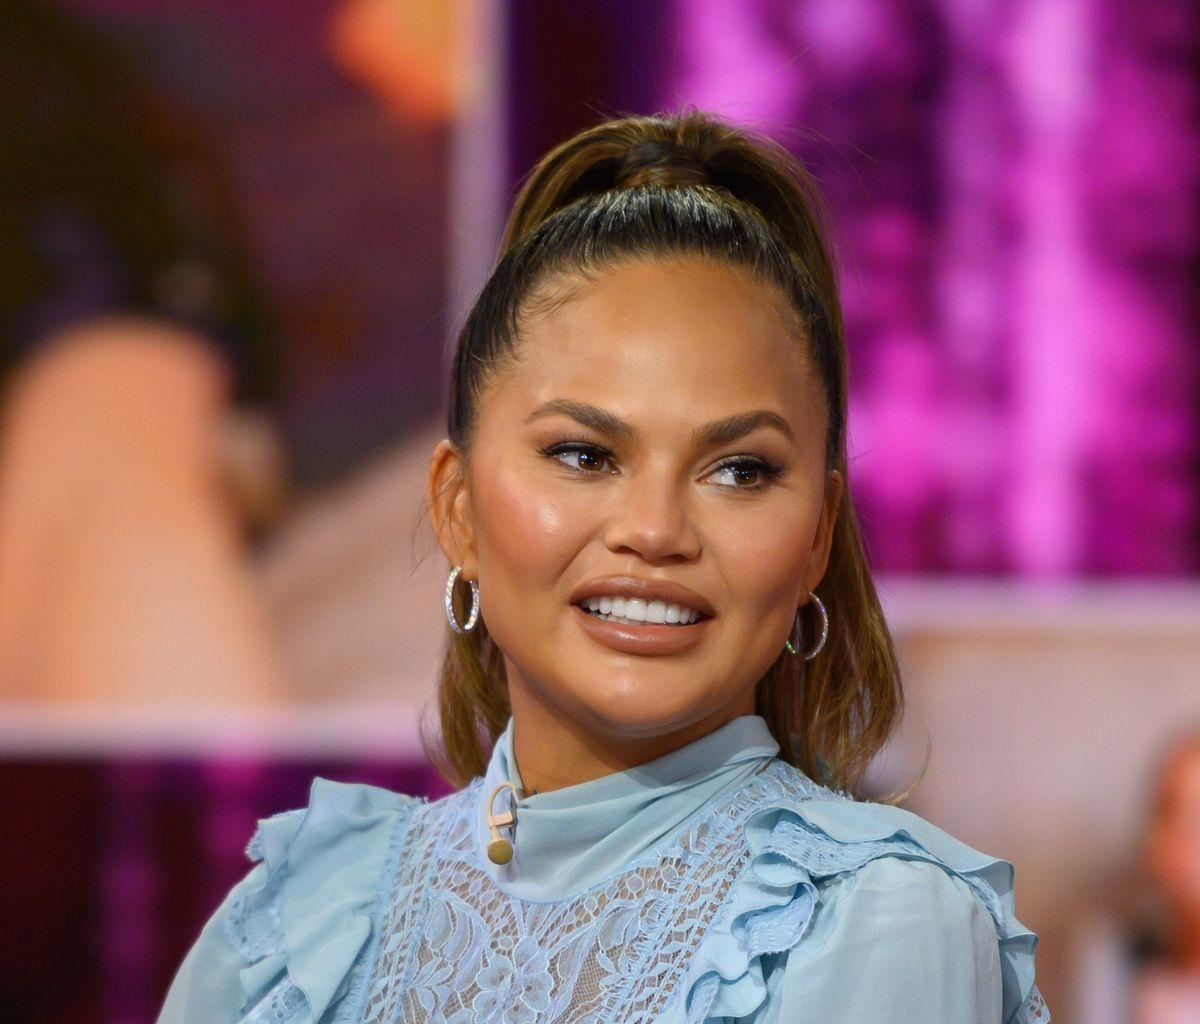 Chrissy Teigen Calls Out The 'Tacky' Women Who Exposed Ben Affleck And Matthew Perry For Using Celebrity App Raya